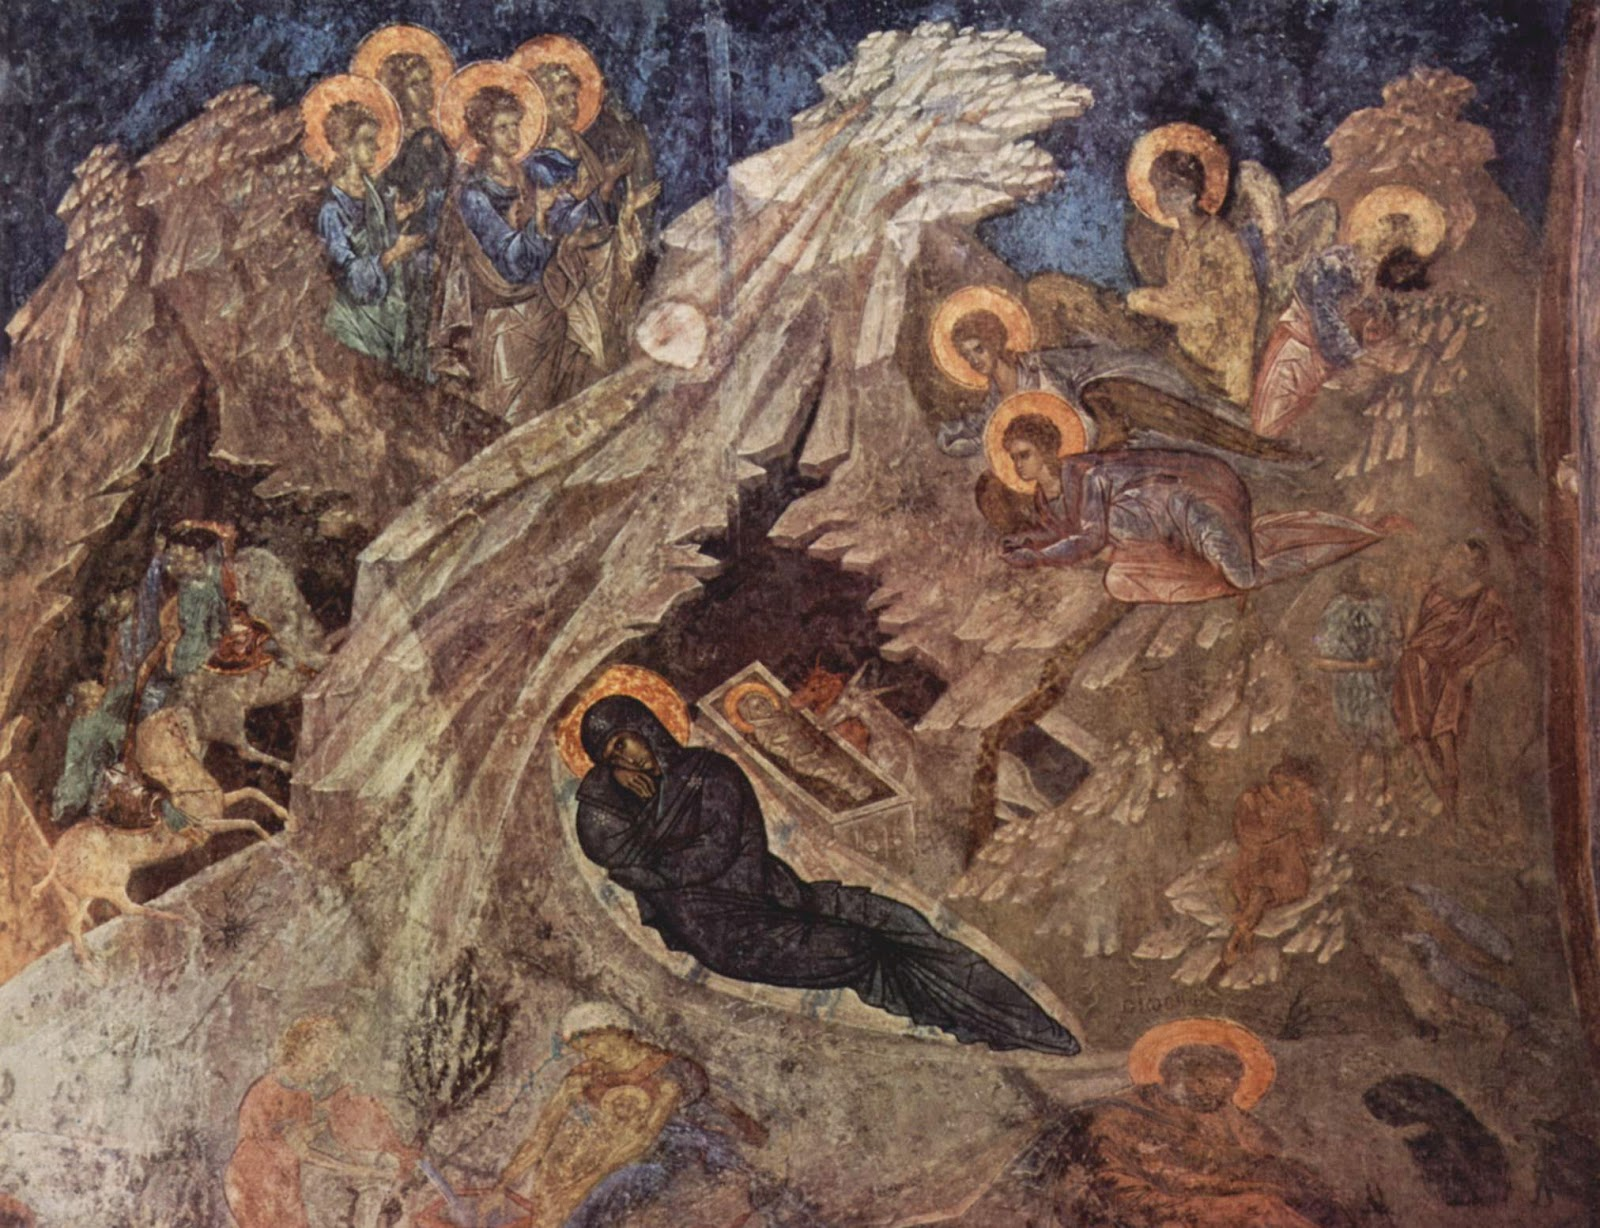 Byzantine fresco from Mistra, Greece, mid-14th century